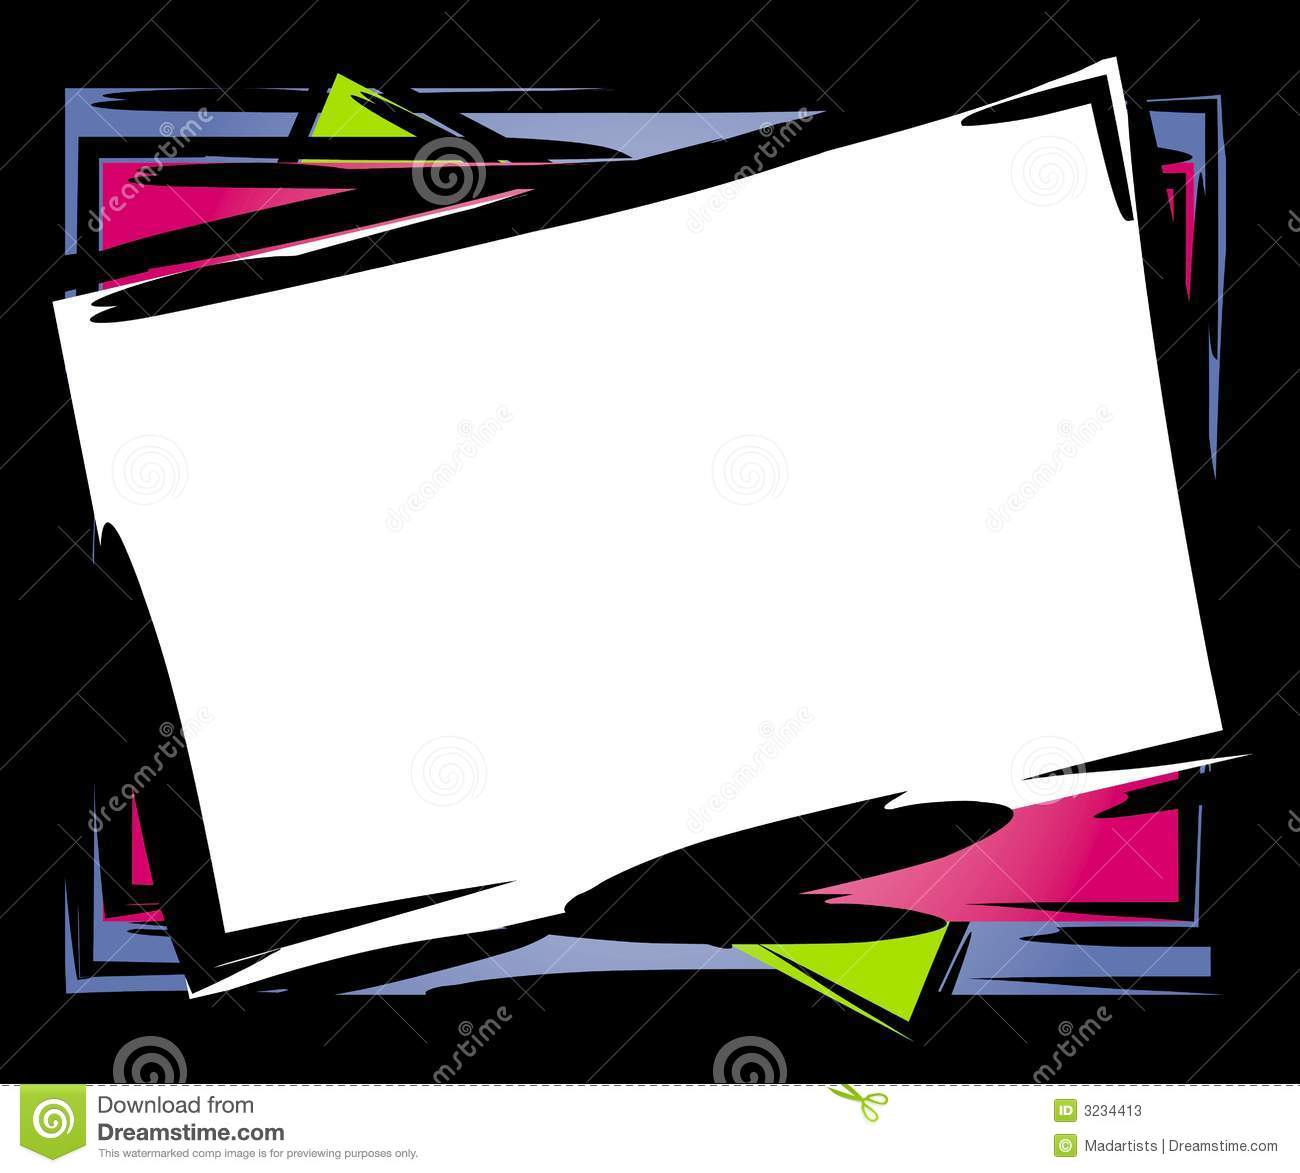 Abstract Tilted Frame Border Stock Photos Image 3234413